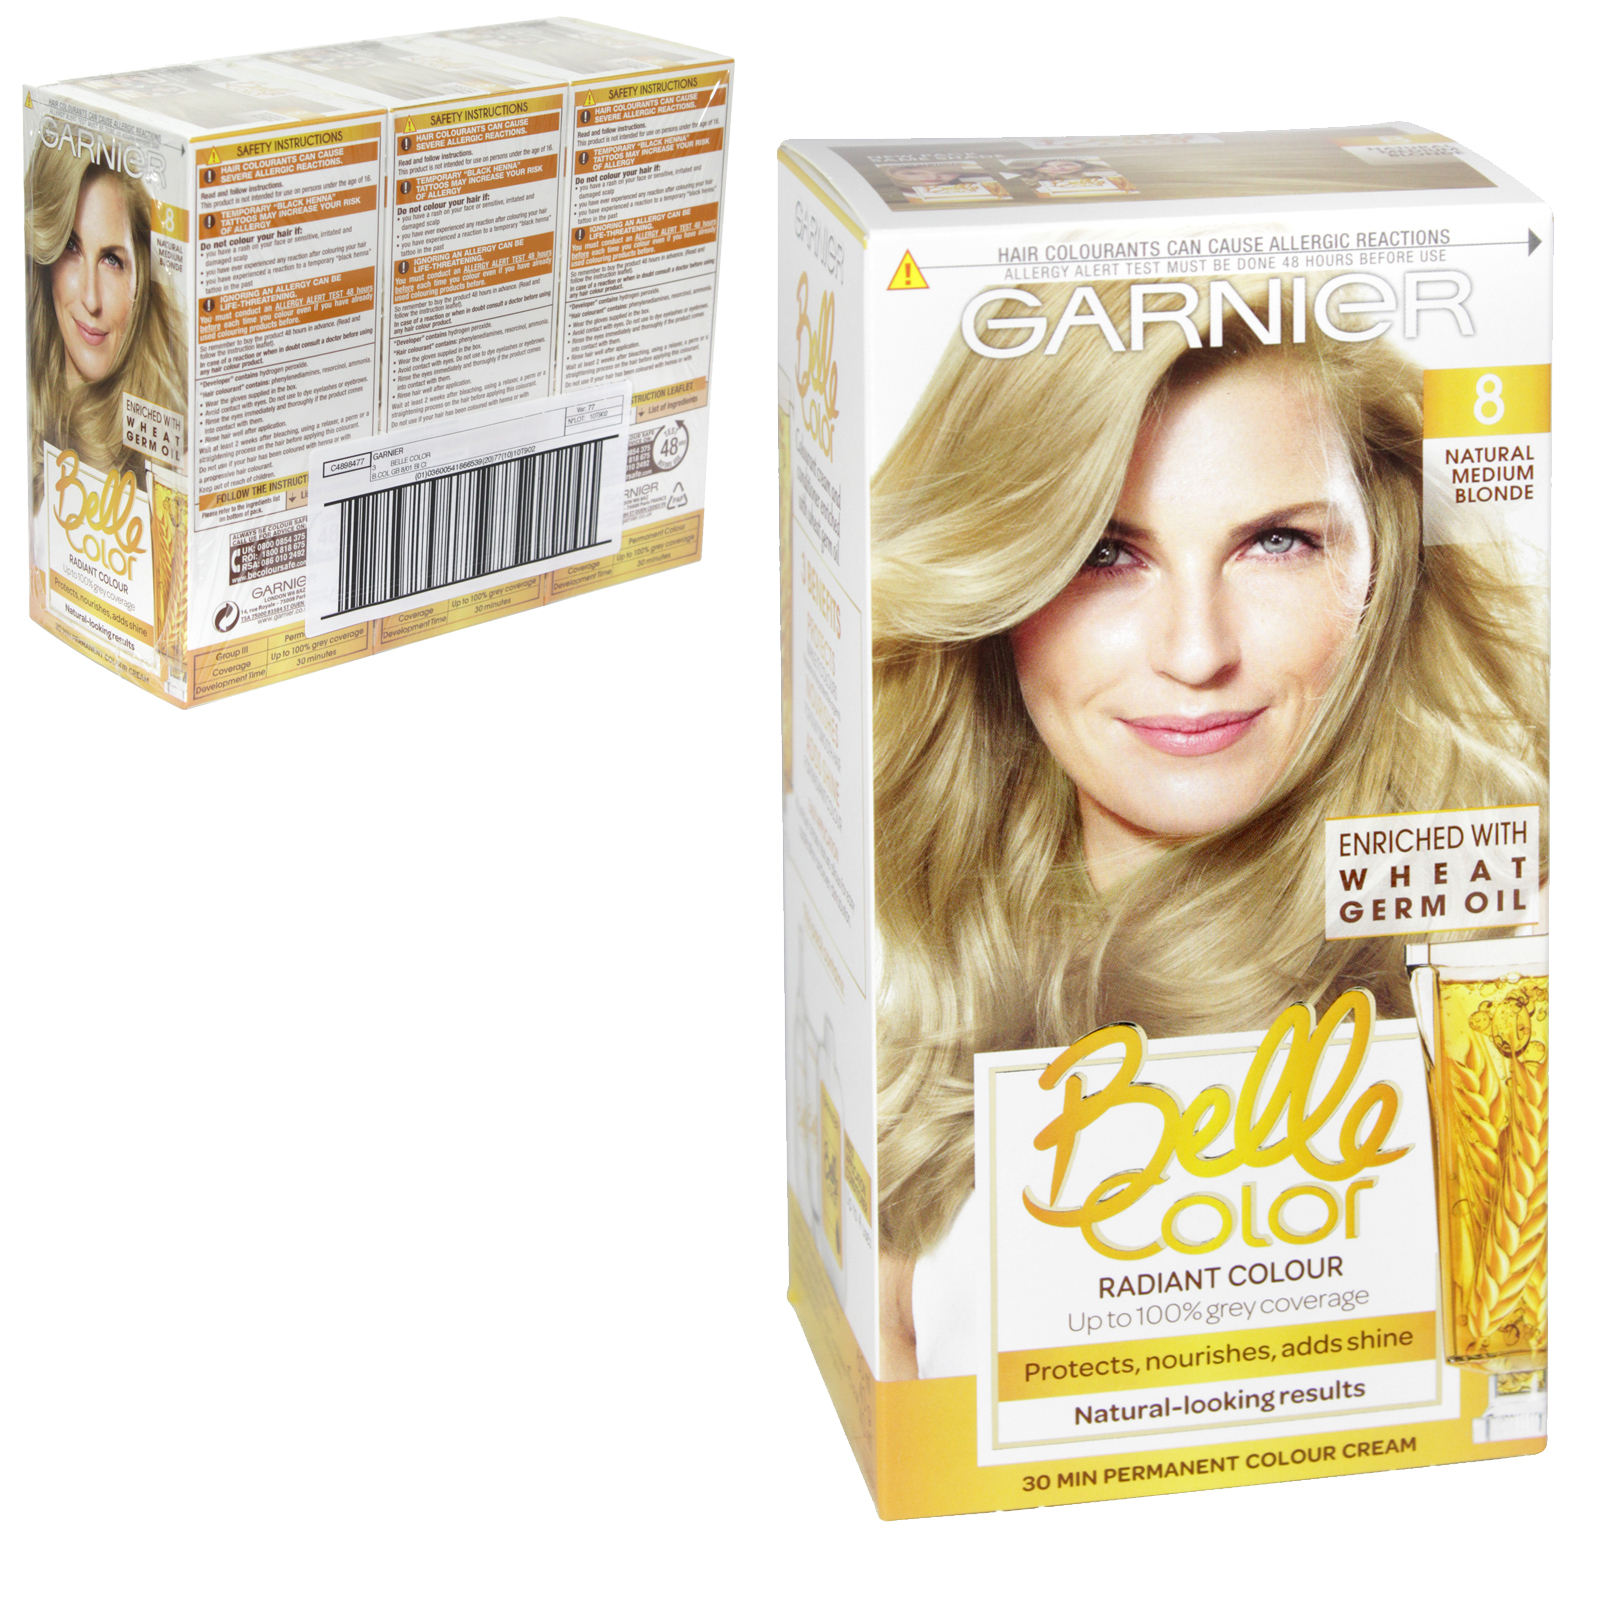 BELLE COLOR 8 NATURAL MEDIUM BLONDE X3